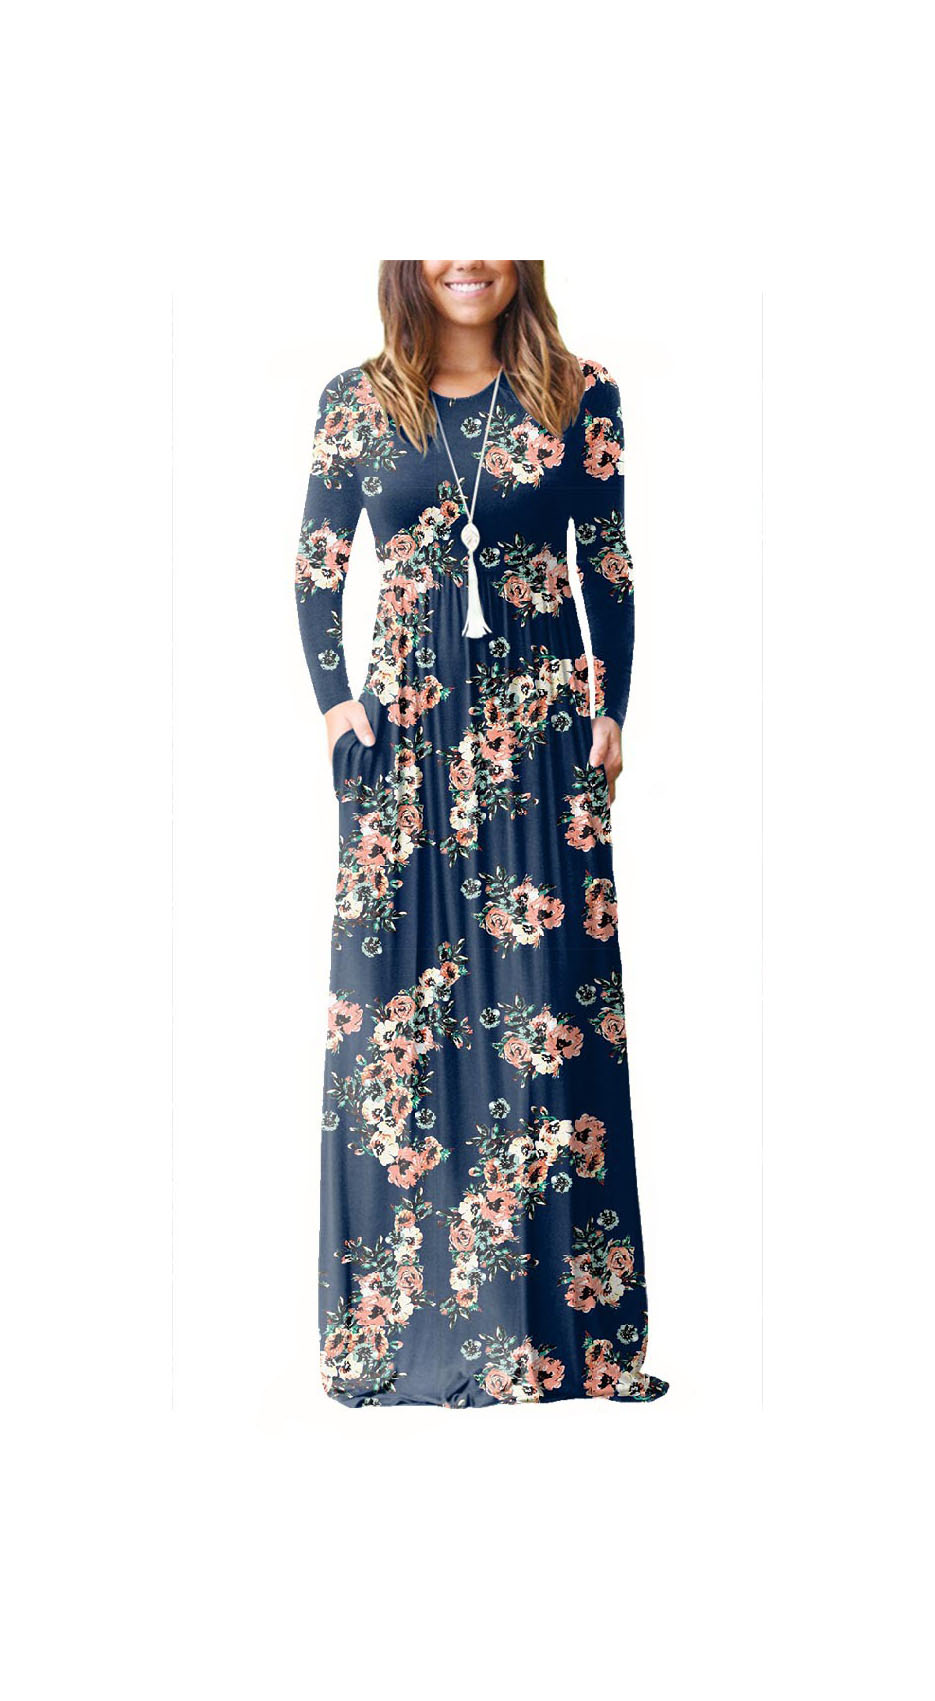 Women Floral Print Maxi Dress Long Sleeve Pockets Beach Boho Long Casual Party Dress dark blue